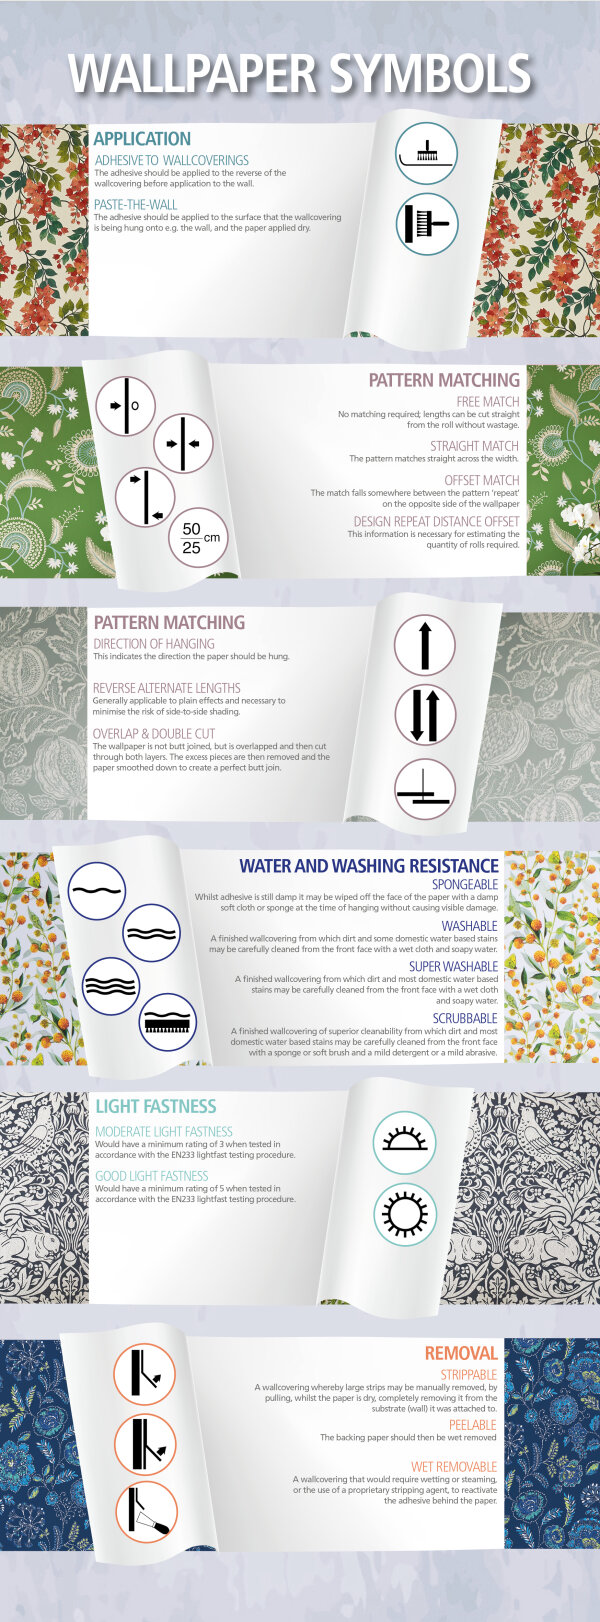 Wallpaper symbols...the meanings behind the marks!